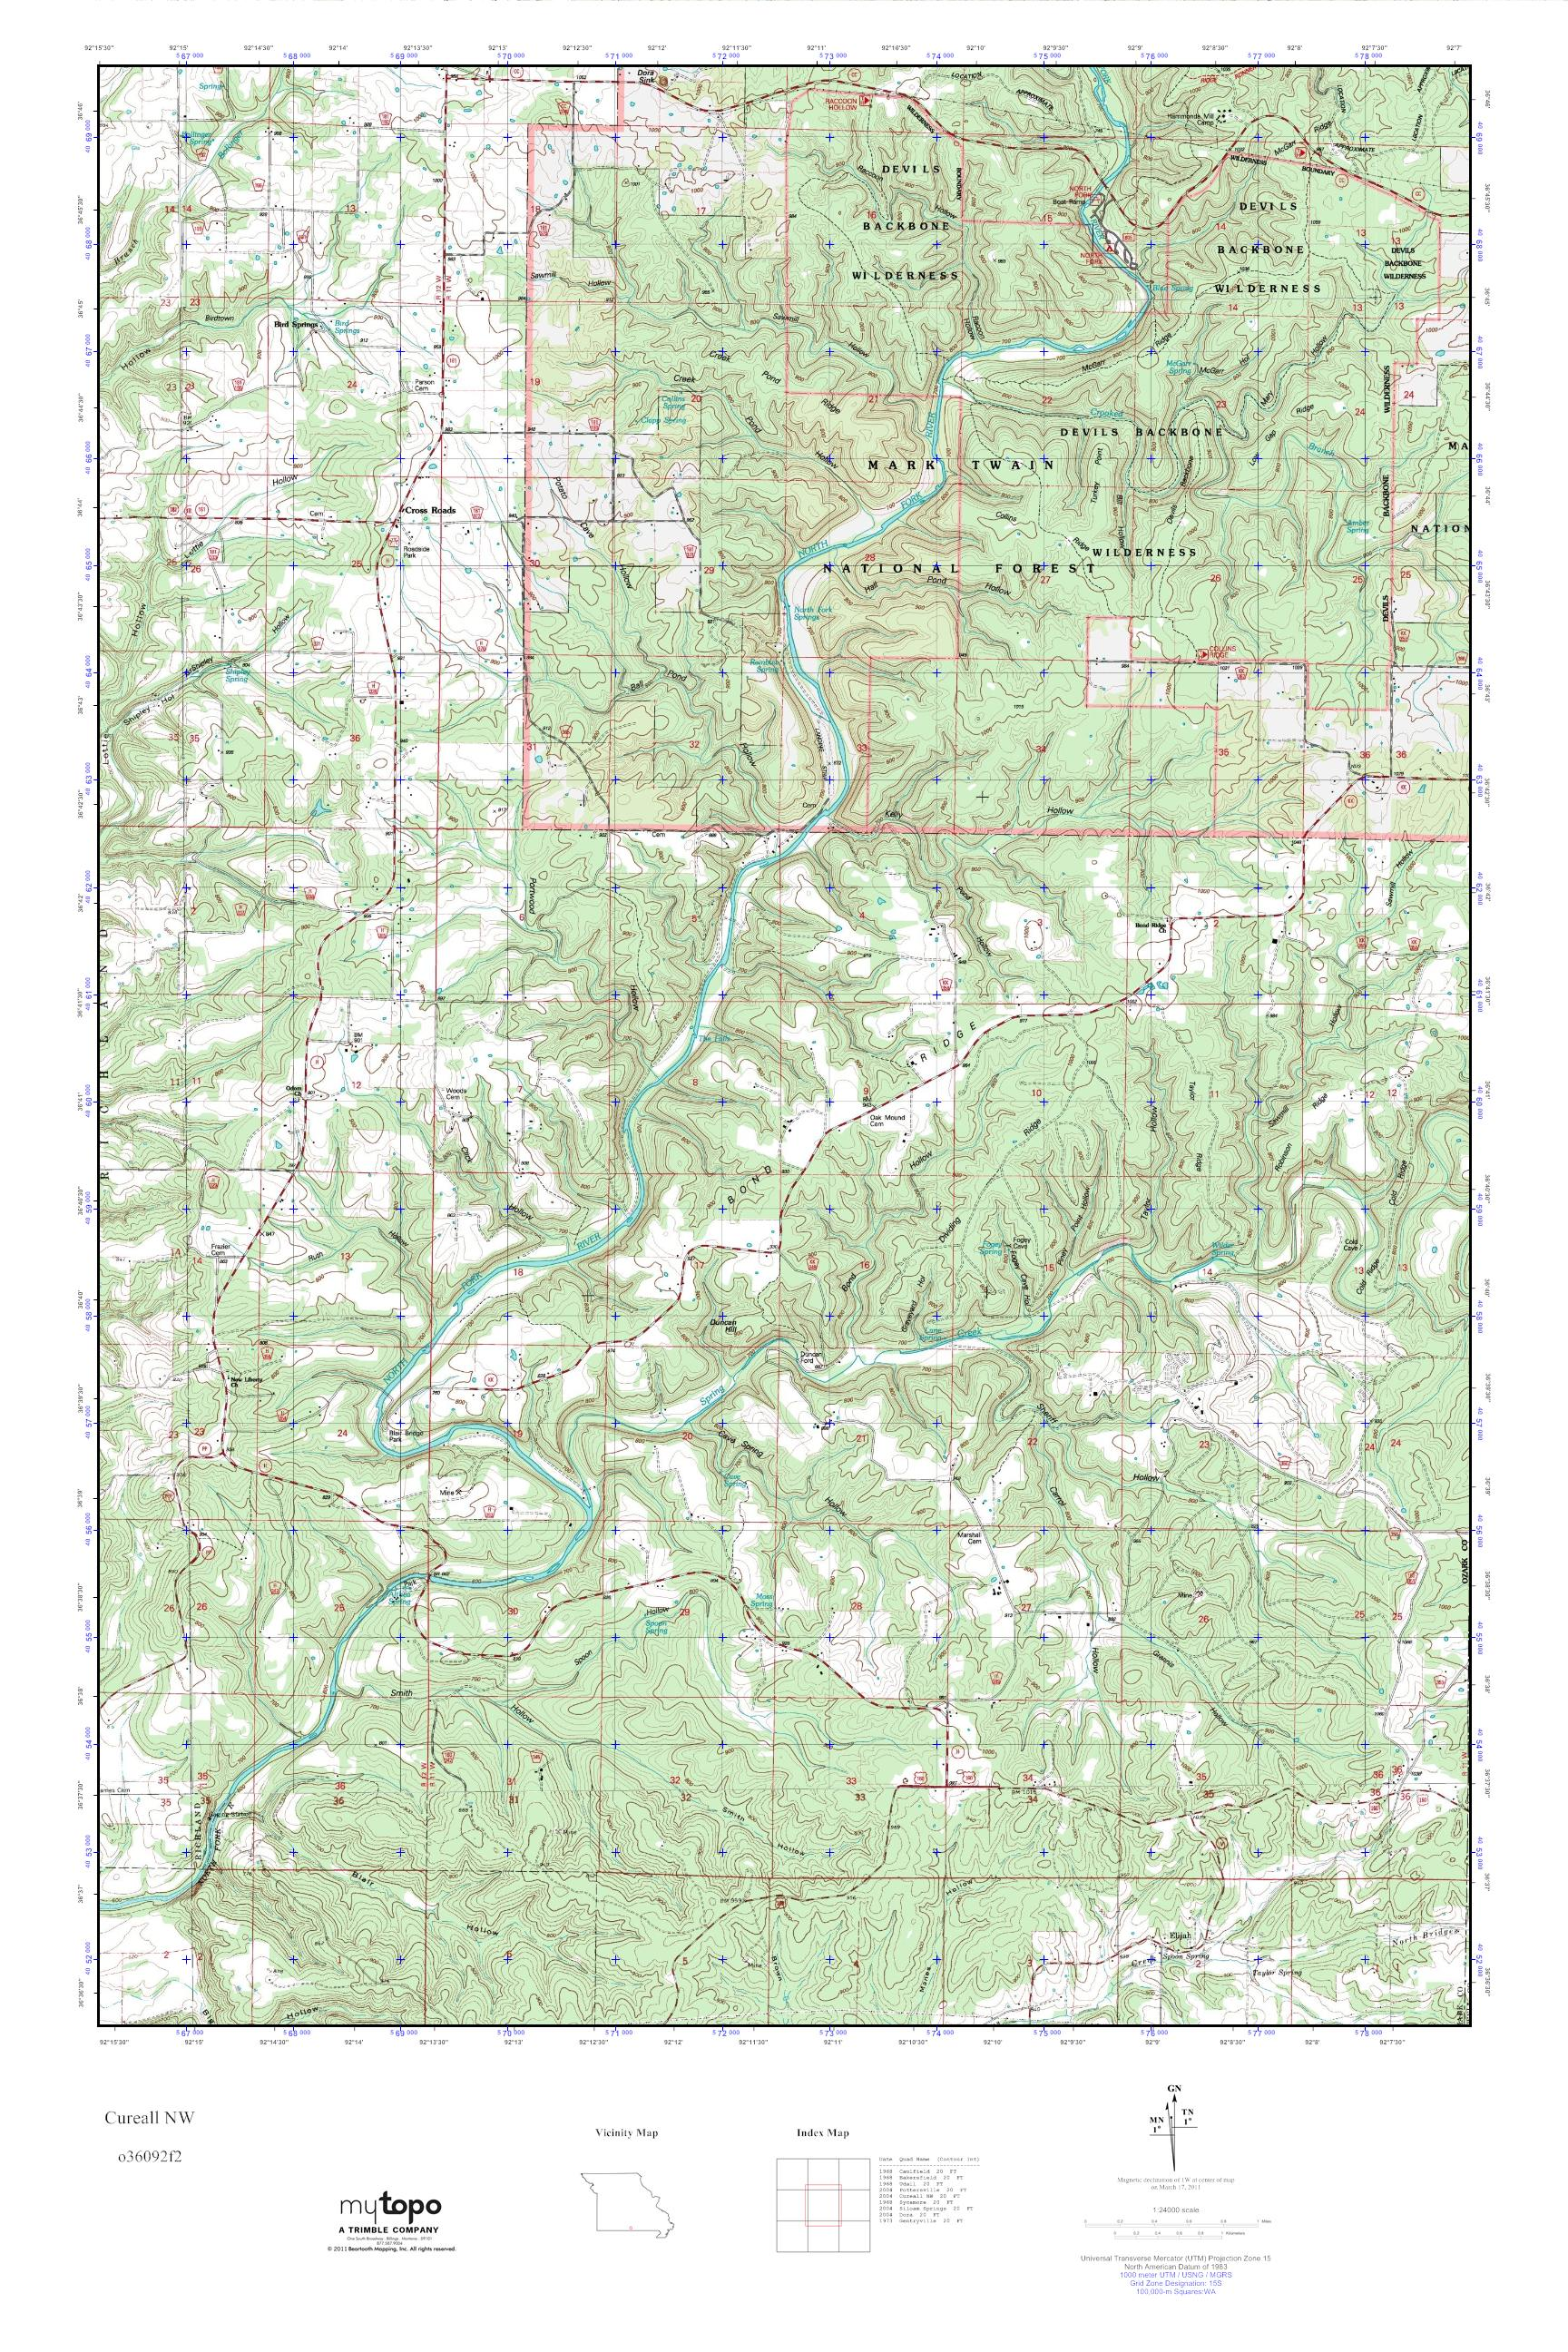 Northwest Missouri Map.Mytopo Cureall Nw Missouri Usgs Quad Topo Map